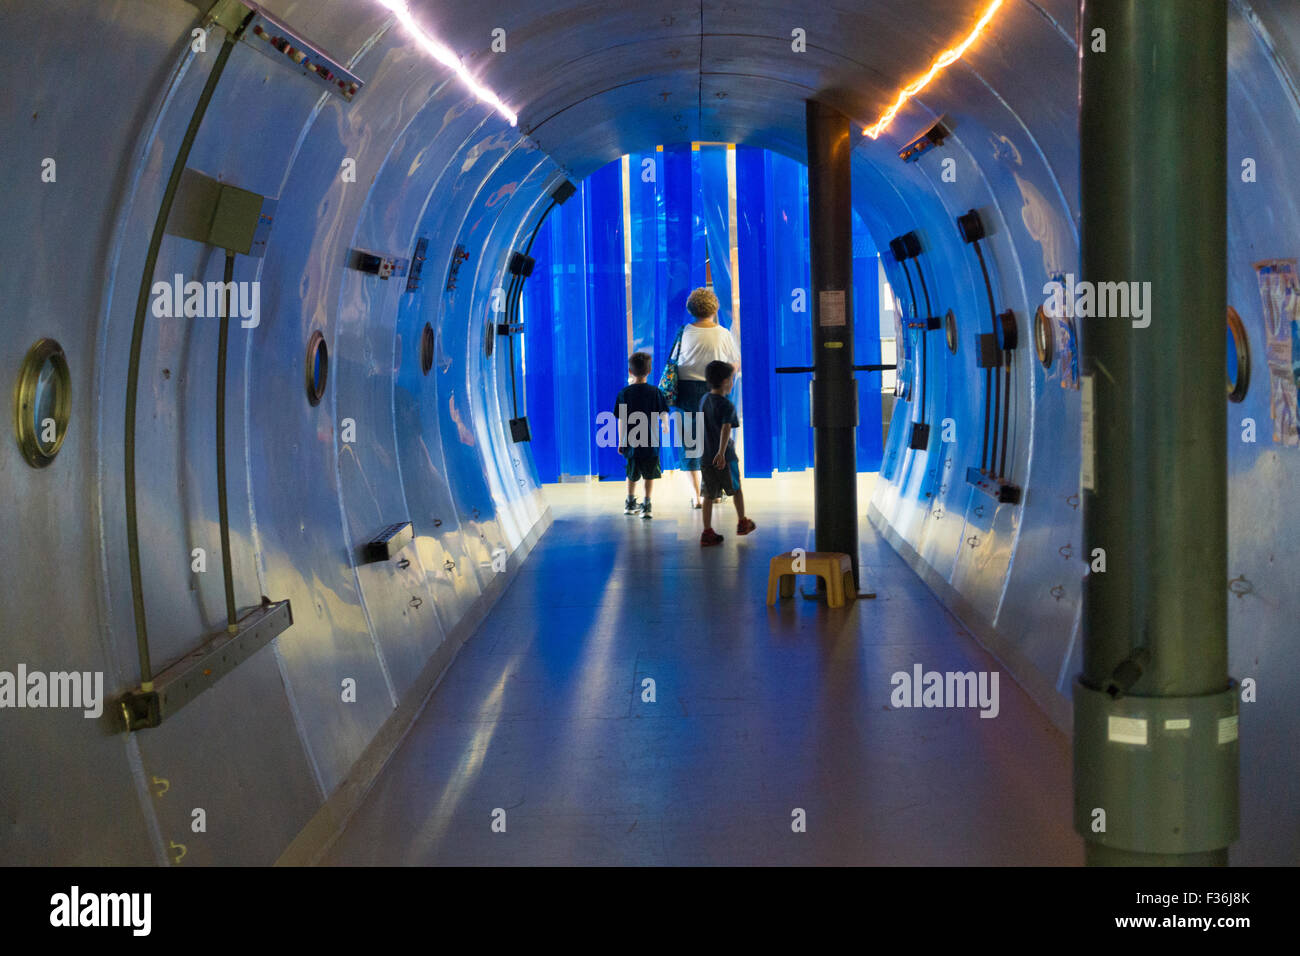 See Science Center Manchester New Hampshire Nh Stock Photo Alamy